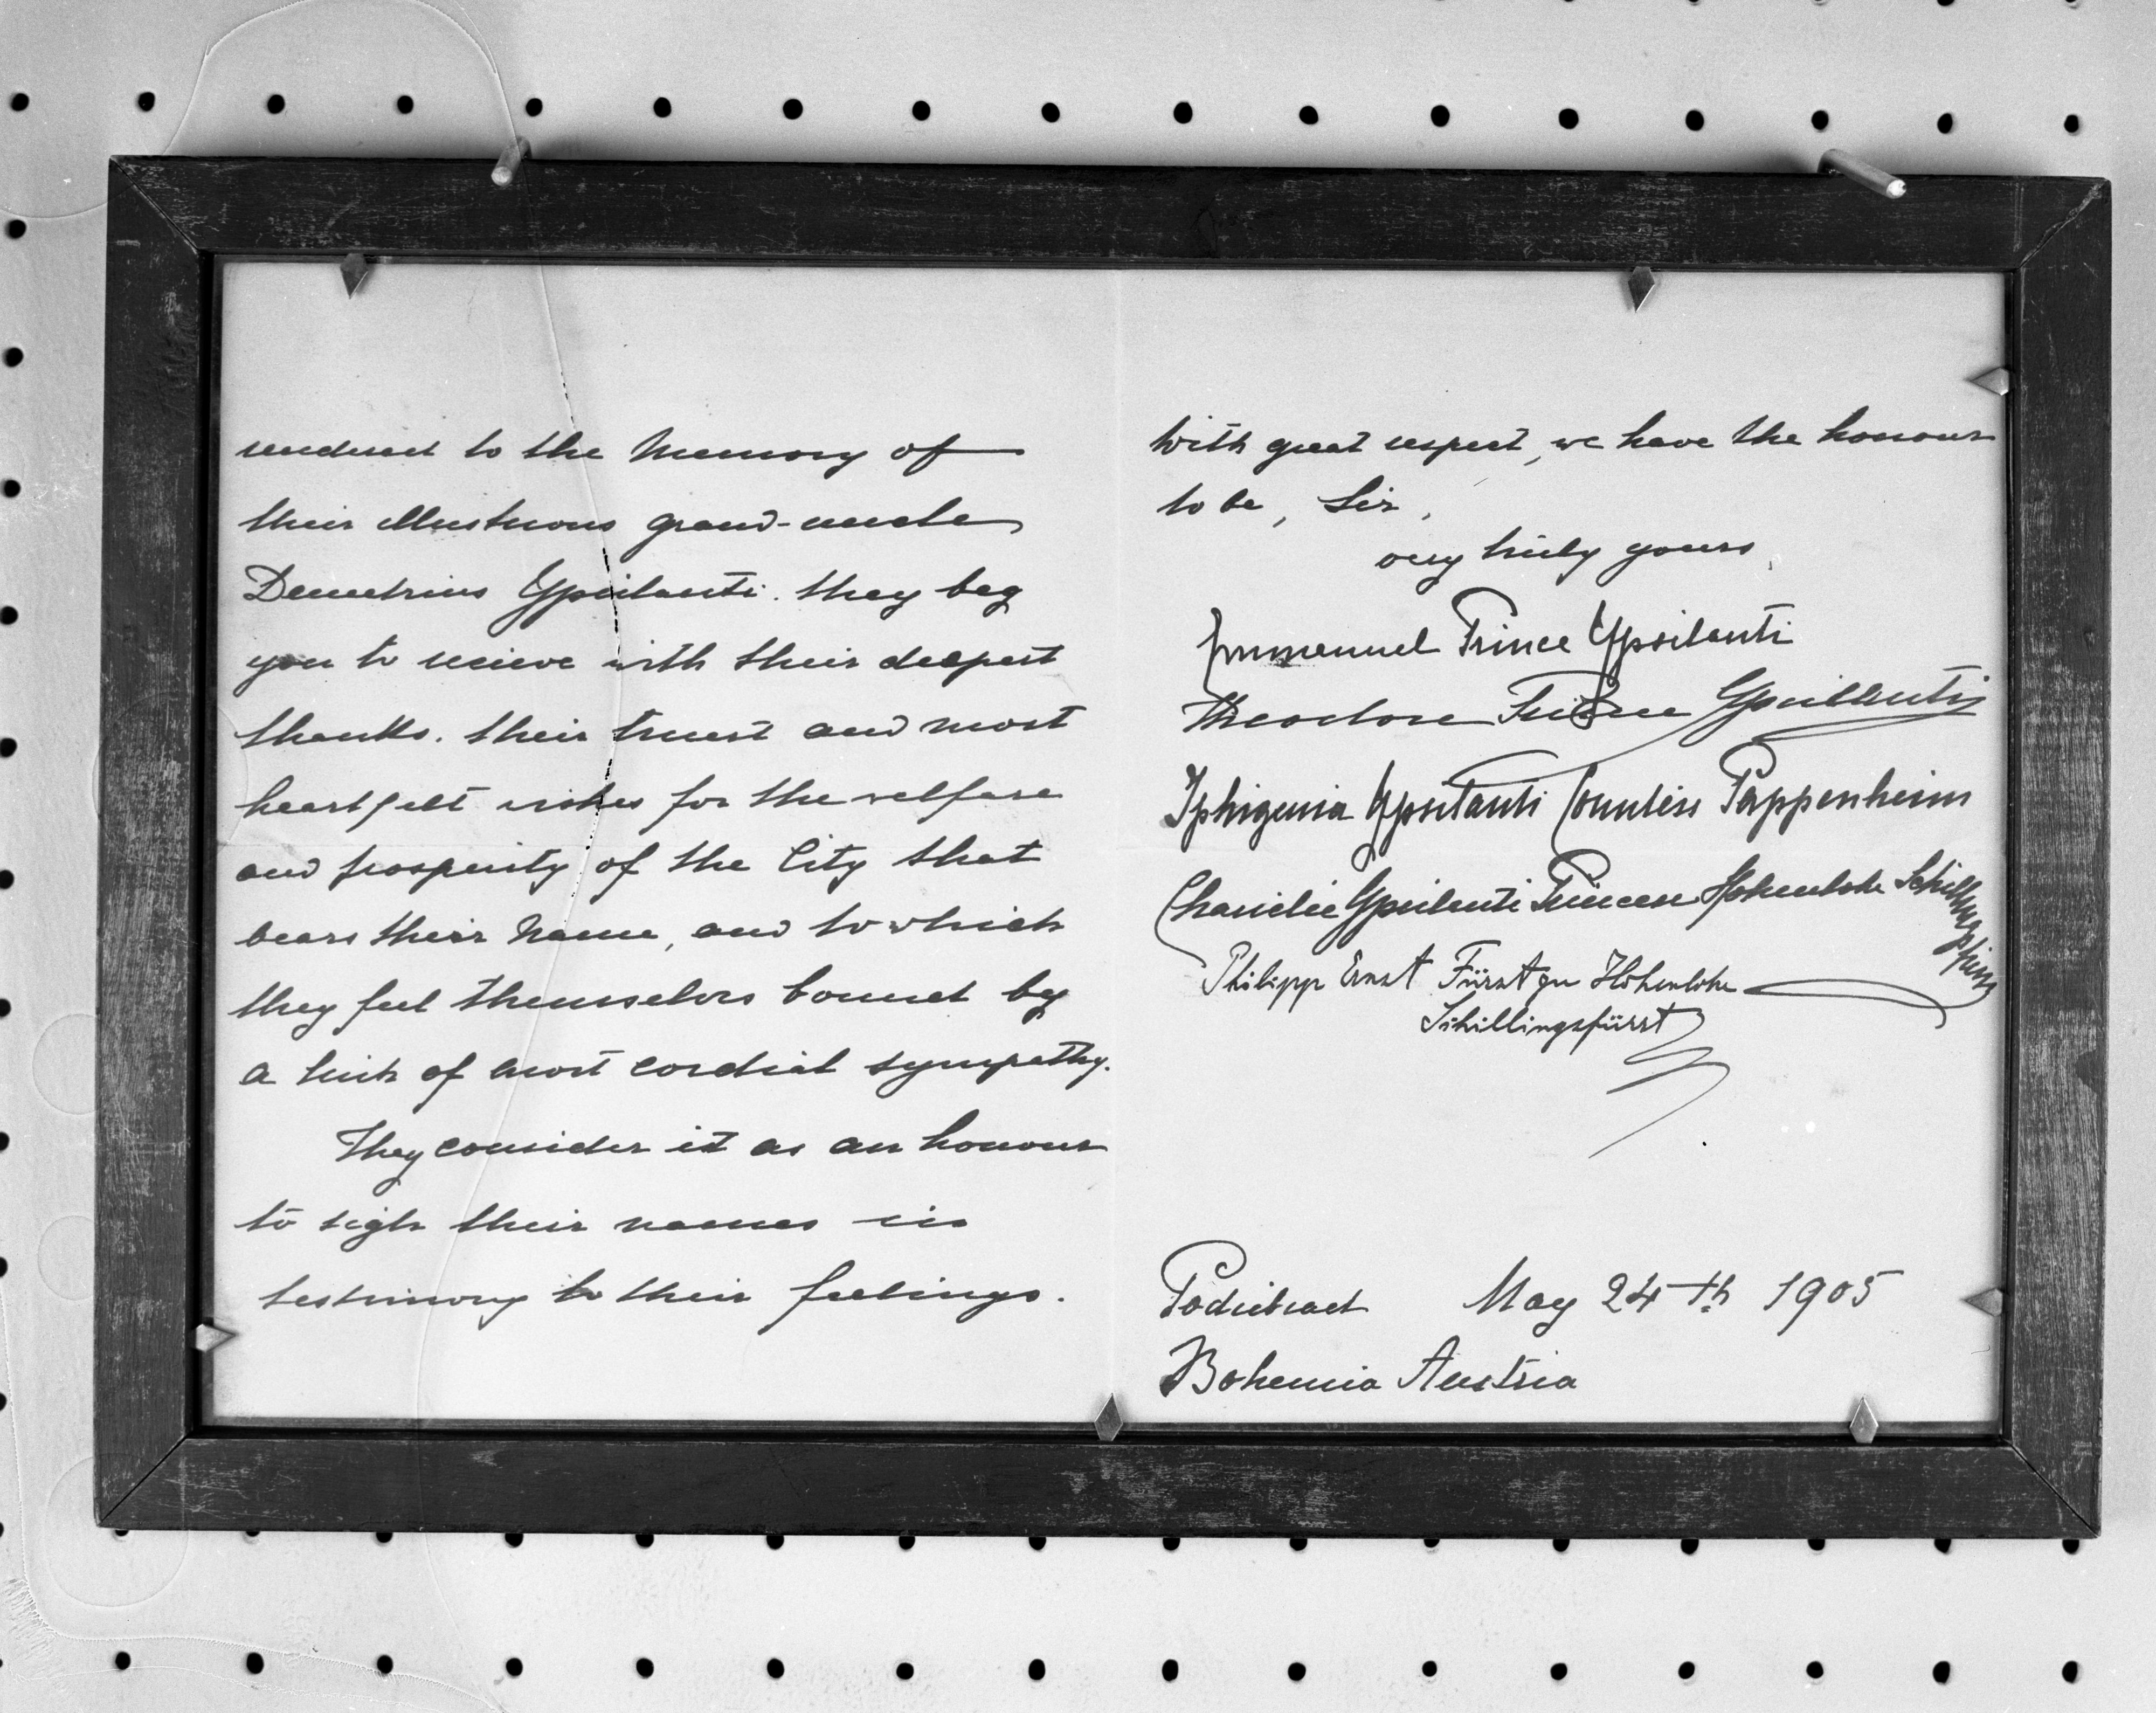 Photo of page 2 of 1905 letter from Austria regarding Ypsilanti history, June 1963 image